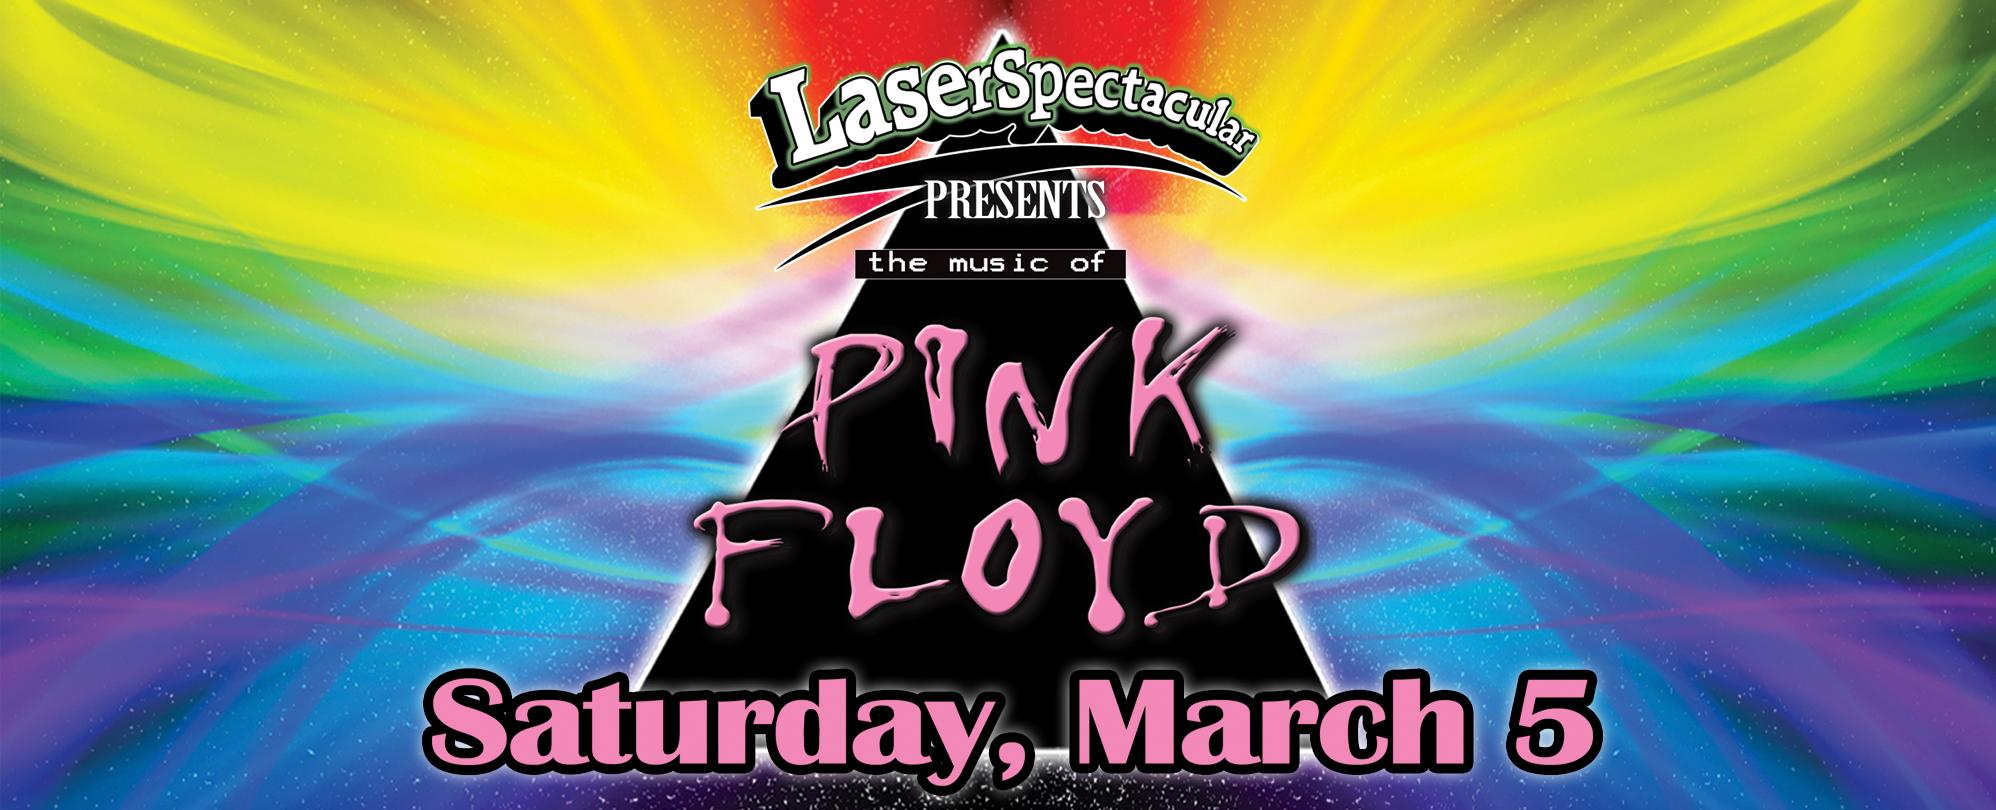 Paramount's Laser Spectacular: Featuring the Music of Pink Floyd